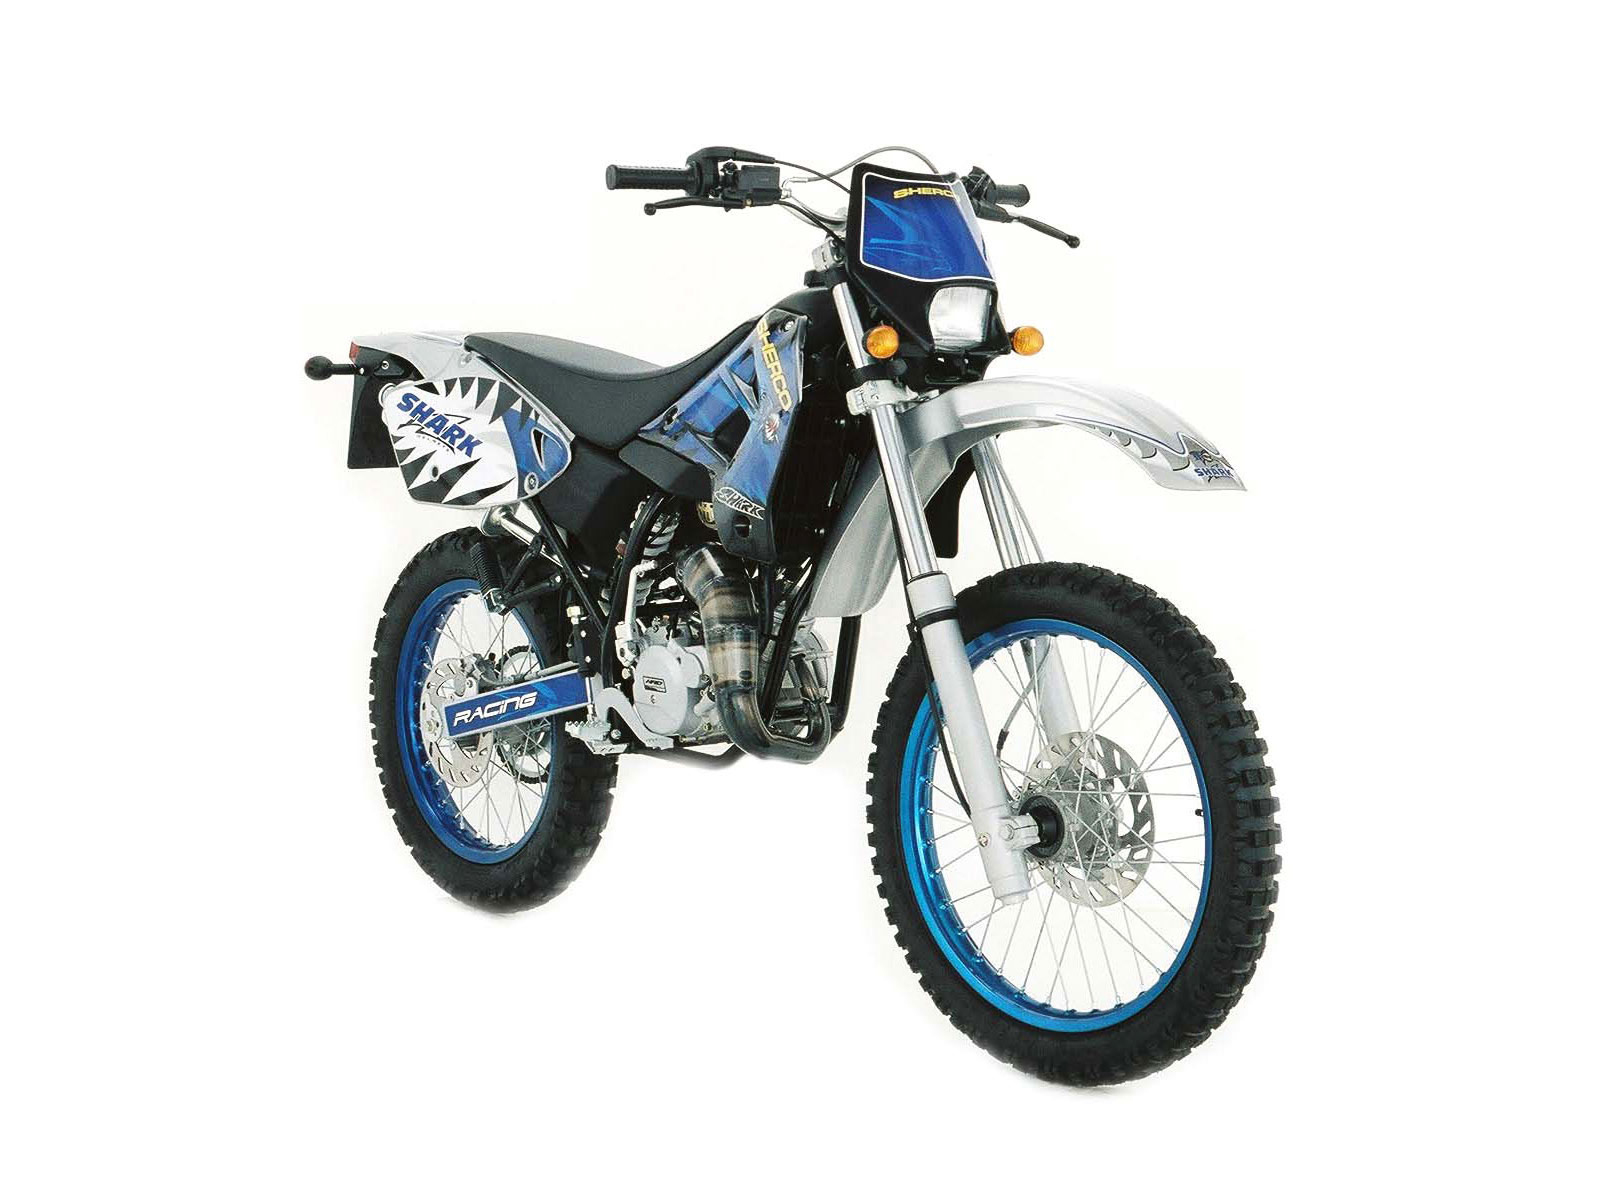 Highland 950 V2 Outback Supermoto 2005 images #97059